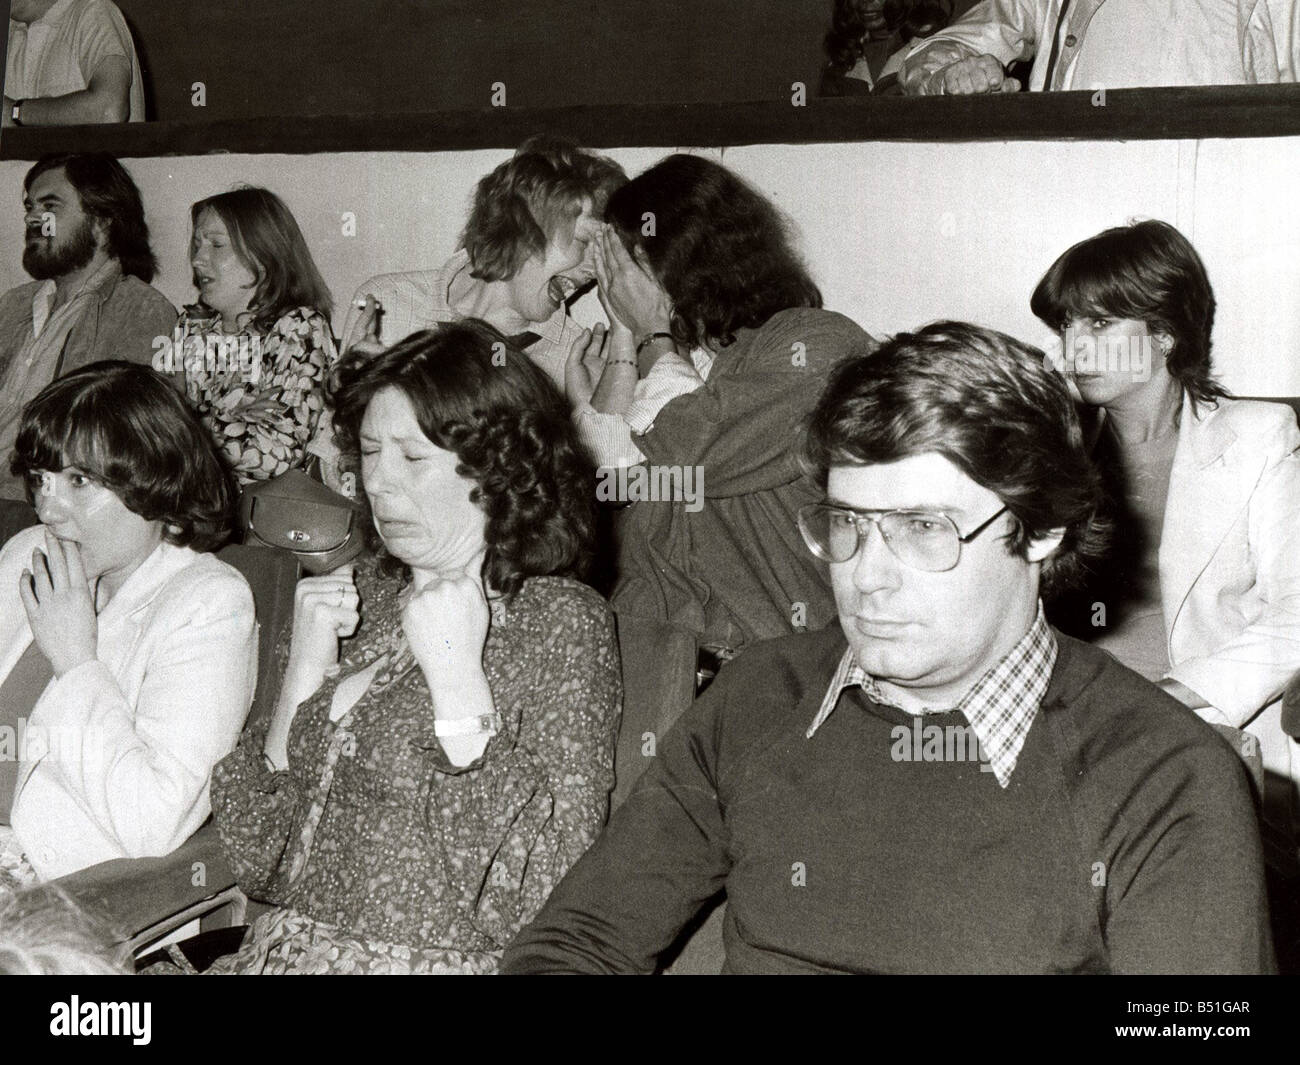 Pictures taken during the first screening of Sci Fi film Alien at the Odeon Theatre in Leicester Square showing - Stock Image